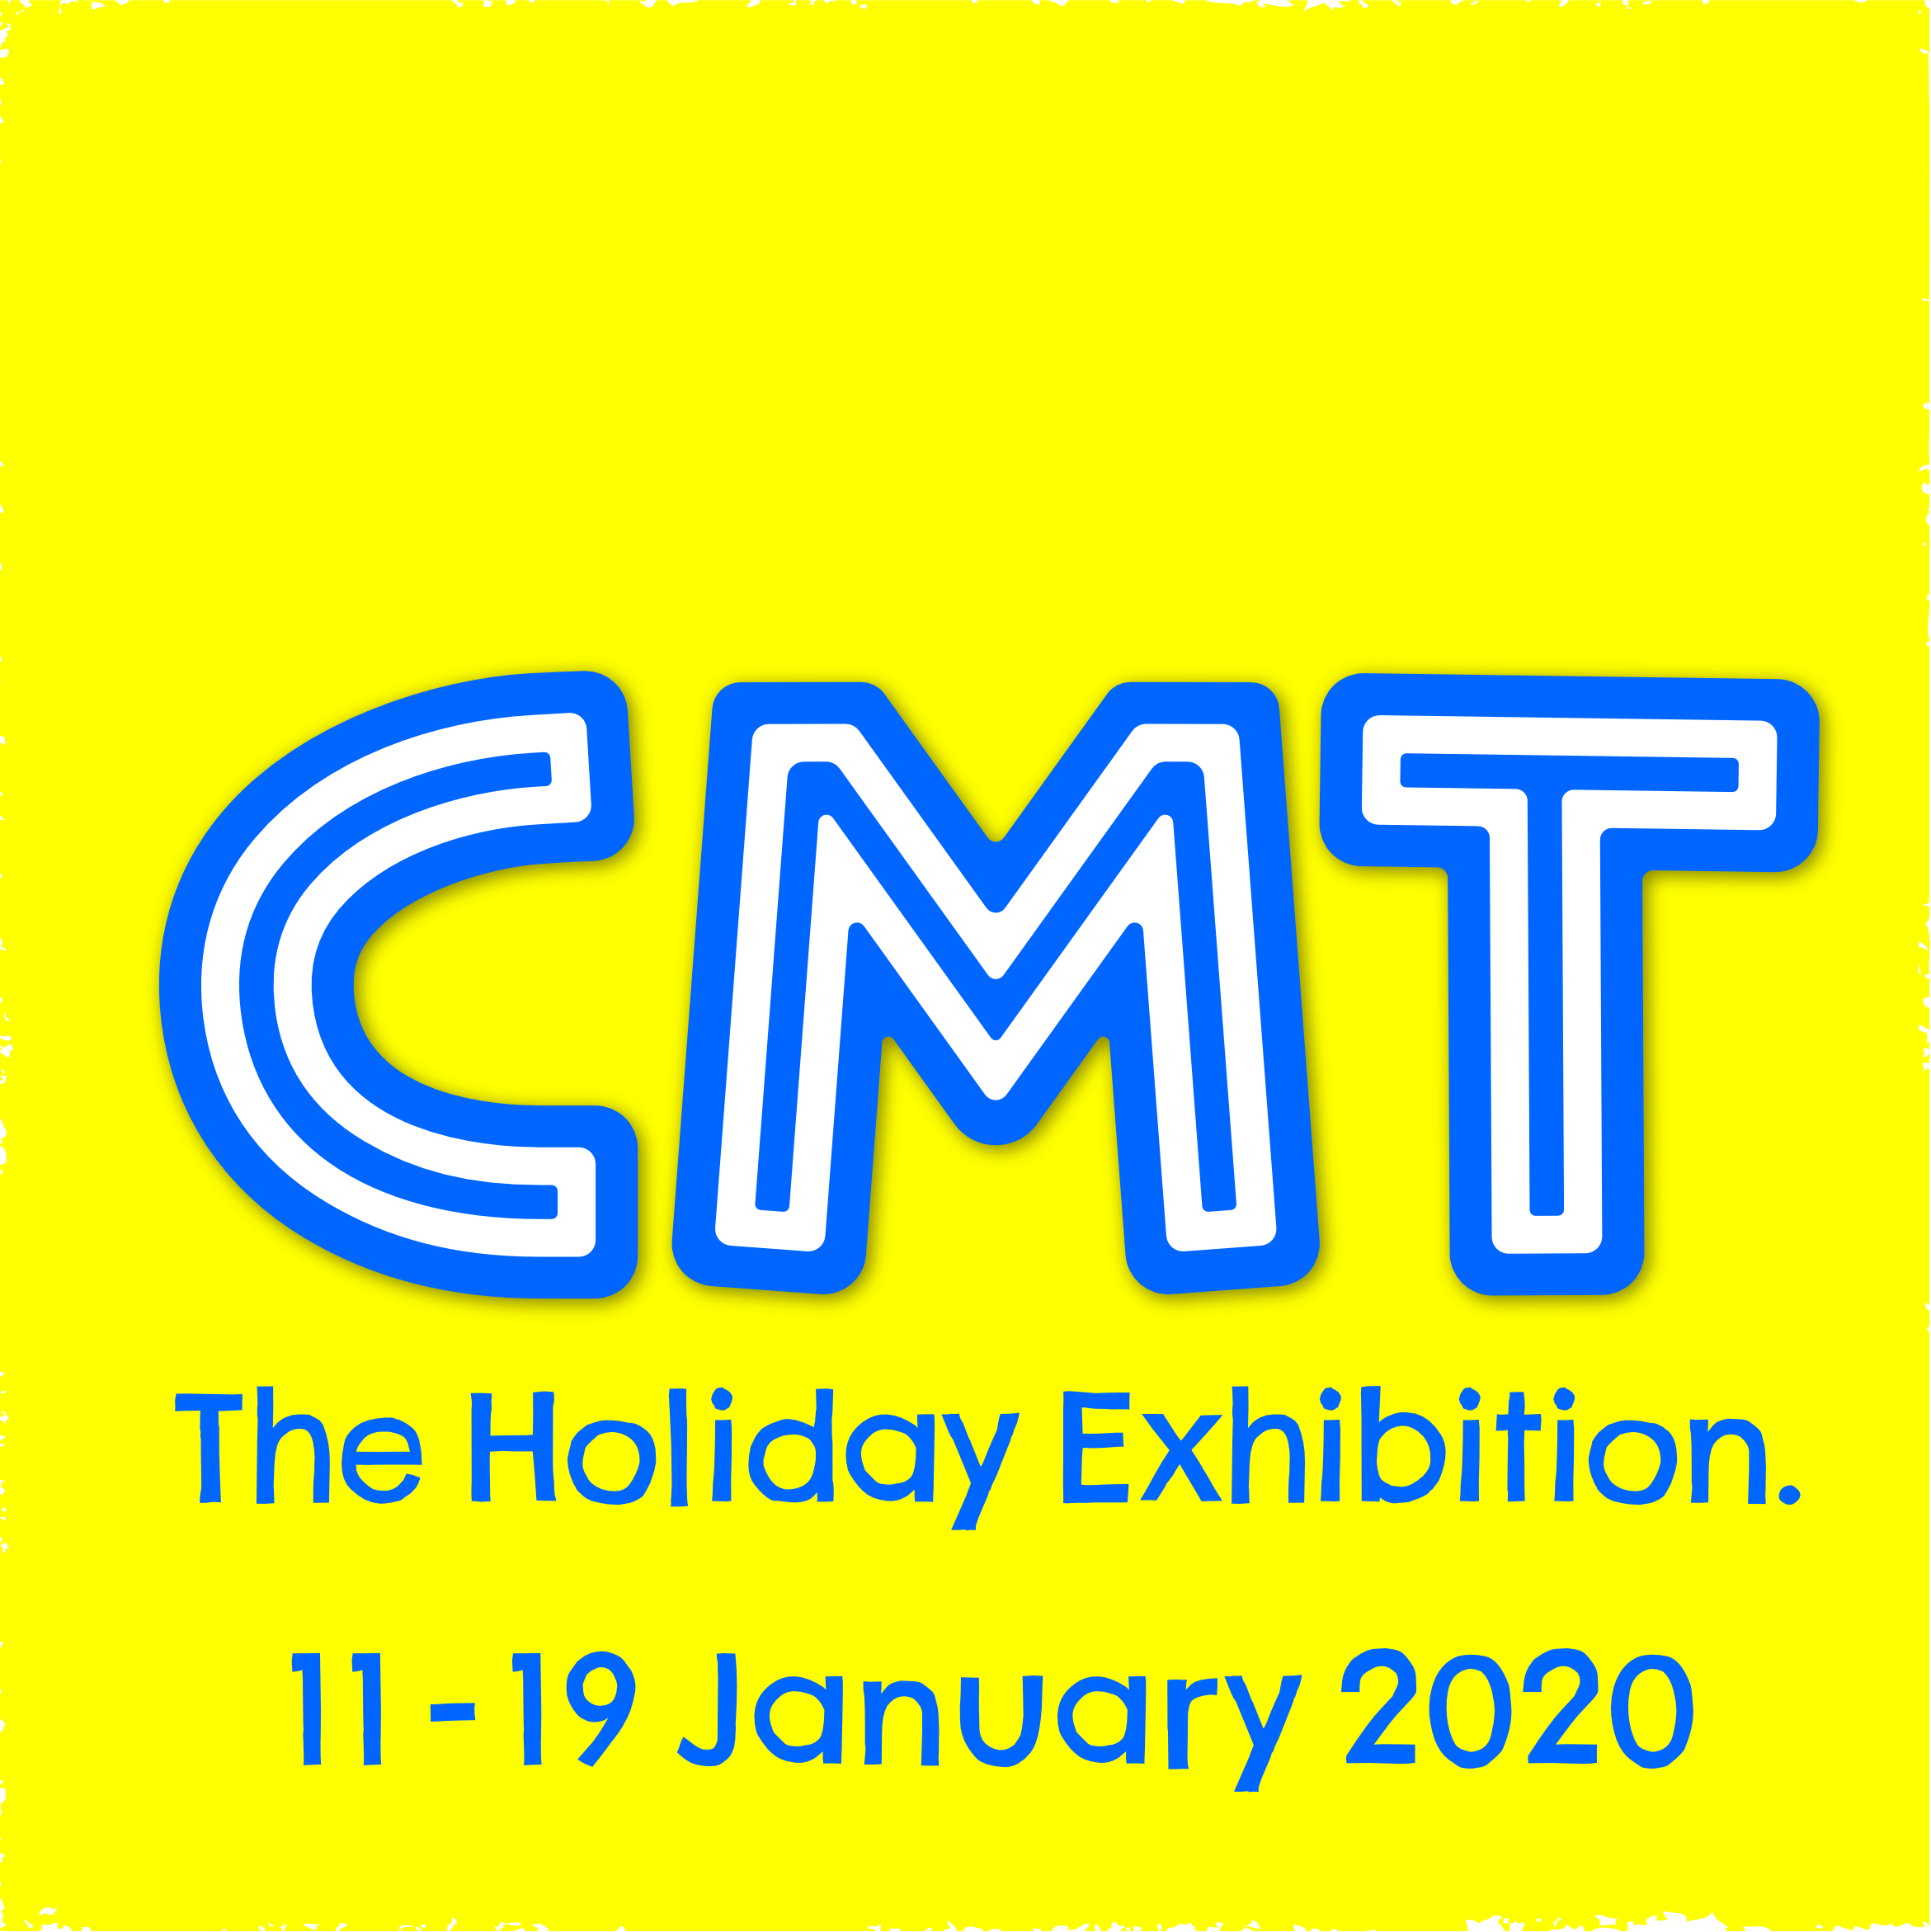 The Holiday Exhibition - CMT Stuttgart 11 -  19 Jan 2020